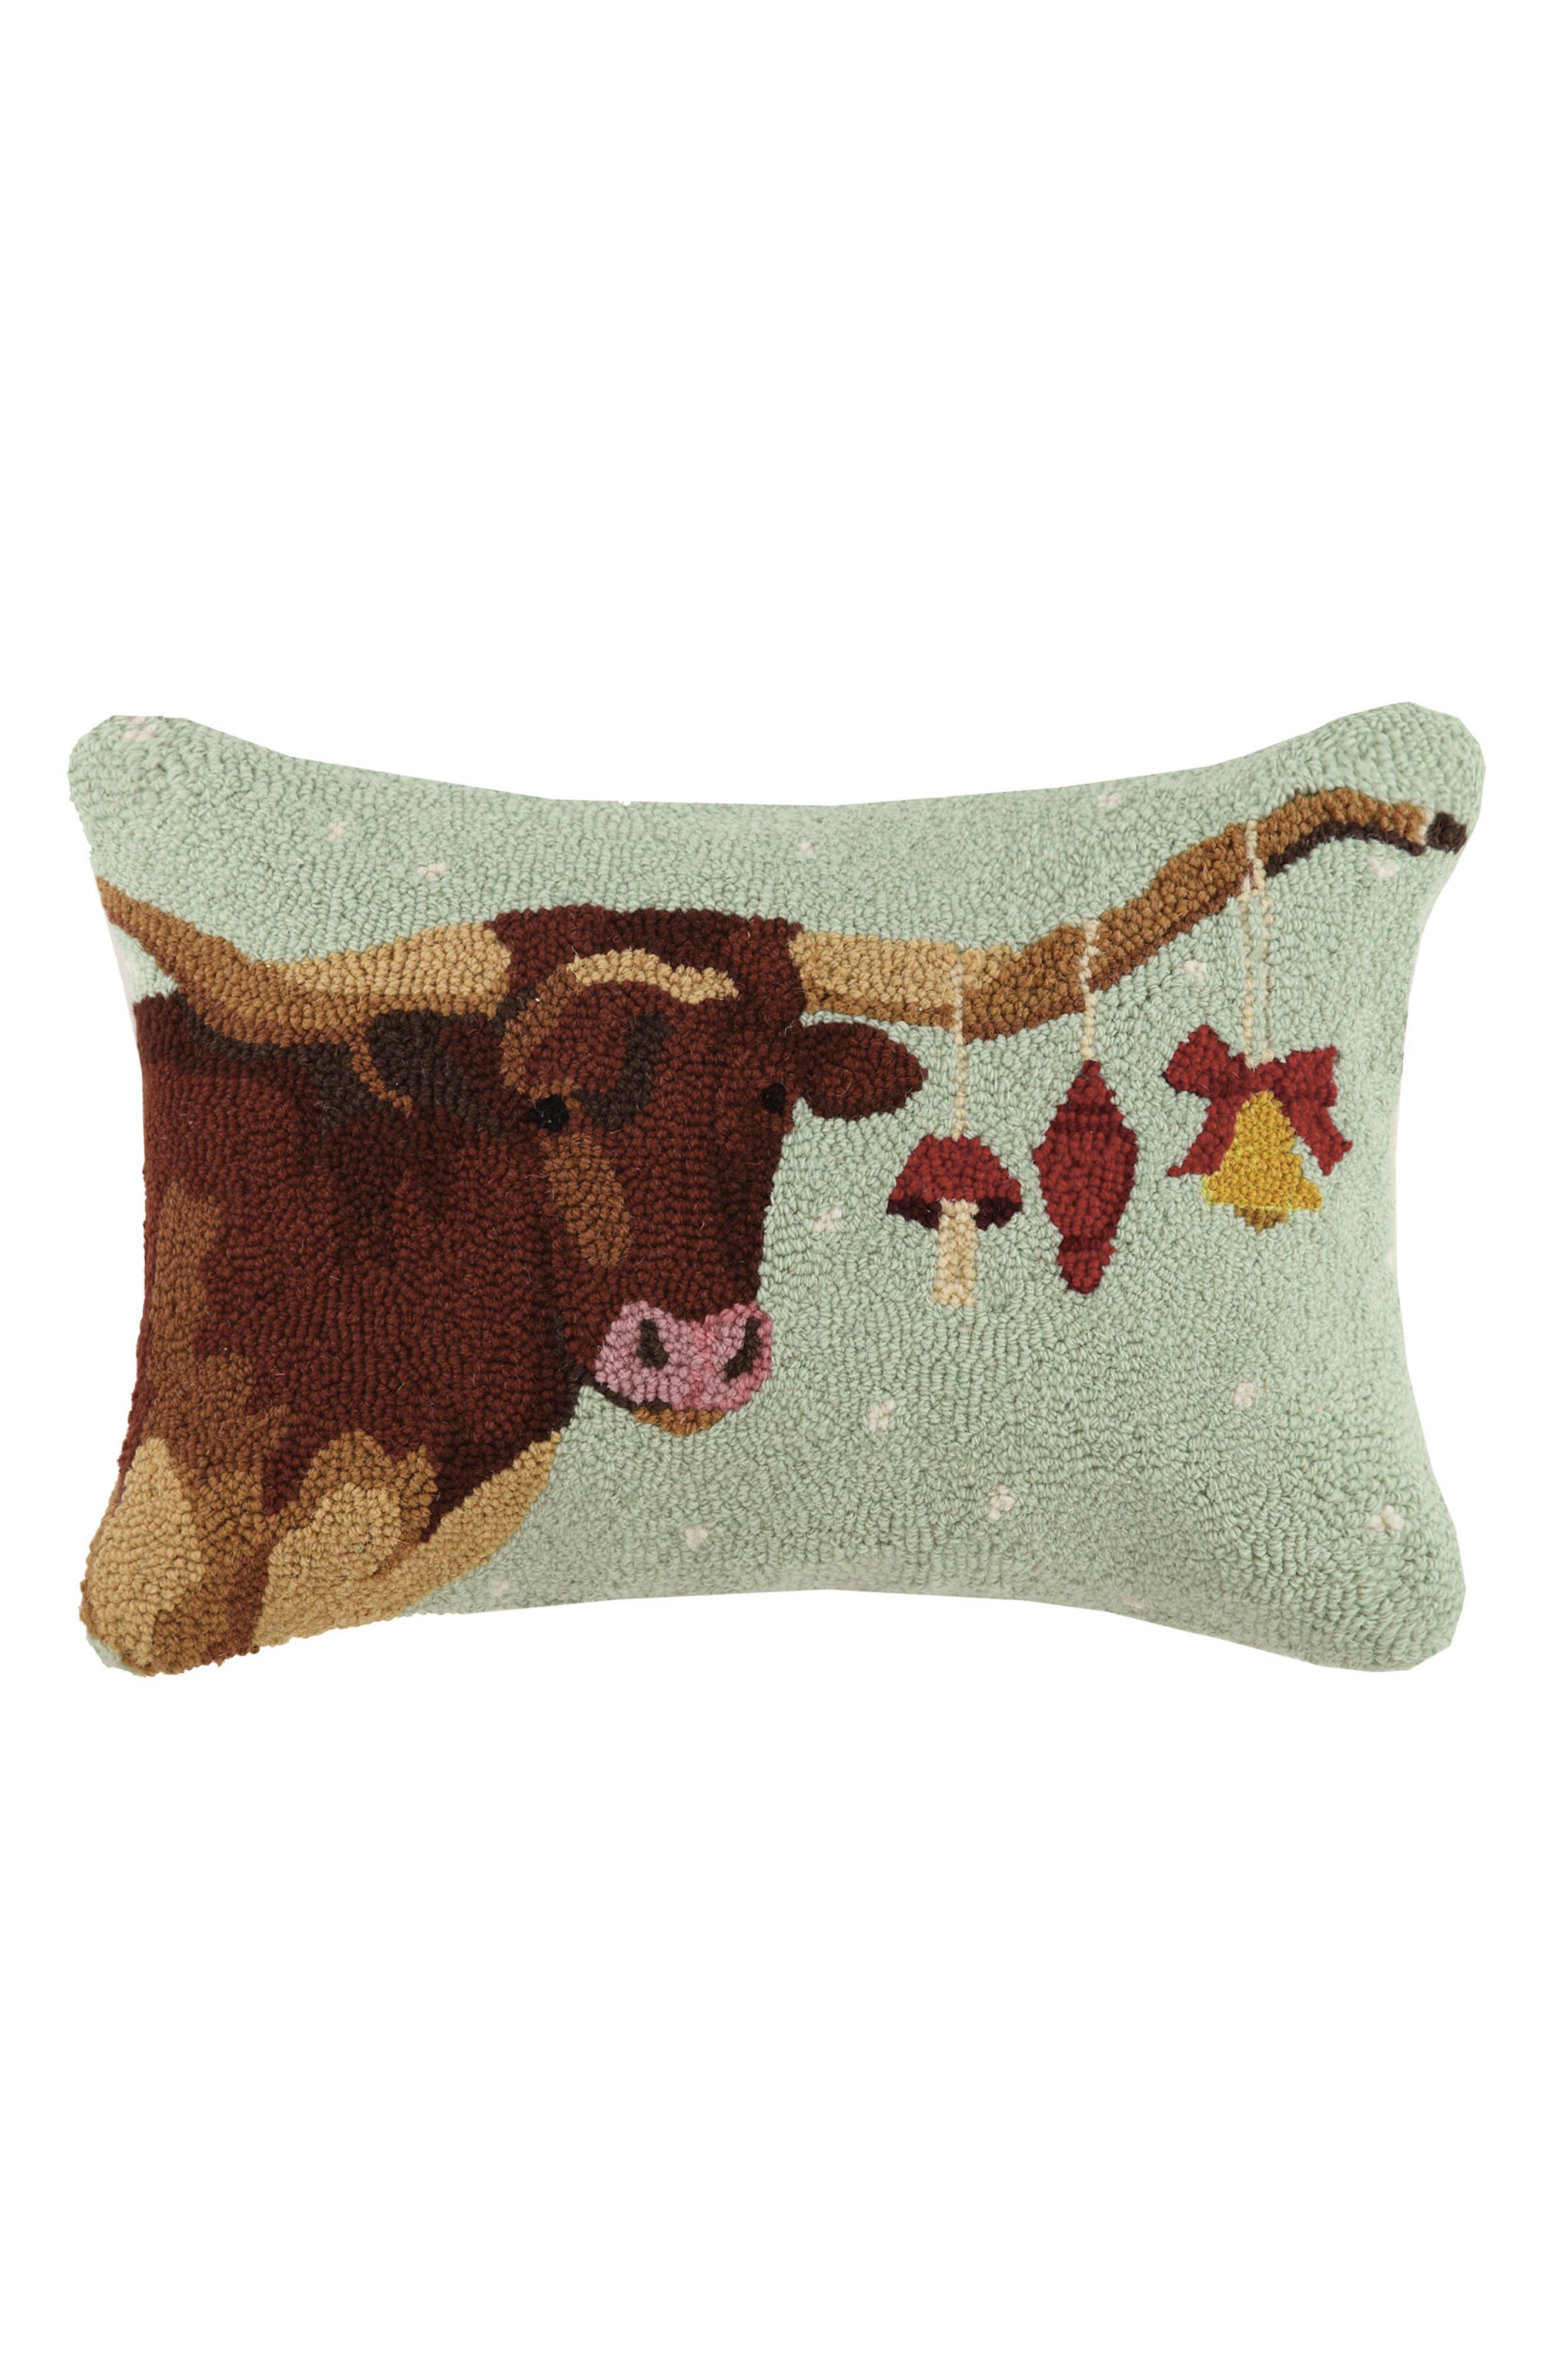 Main Image - Peking Handicraft Longhorn with Ornaments Hooked Accent Pillow